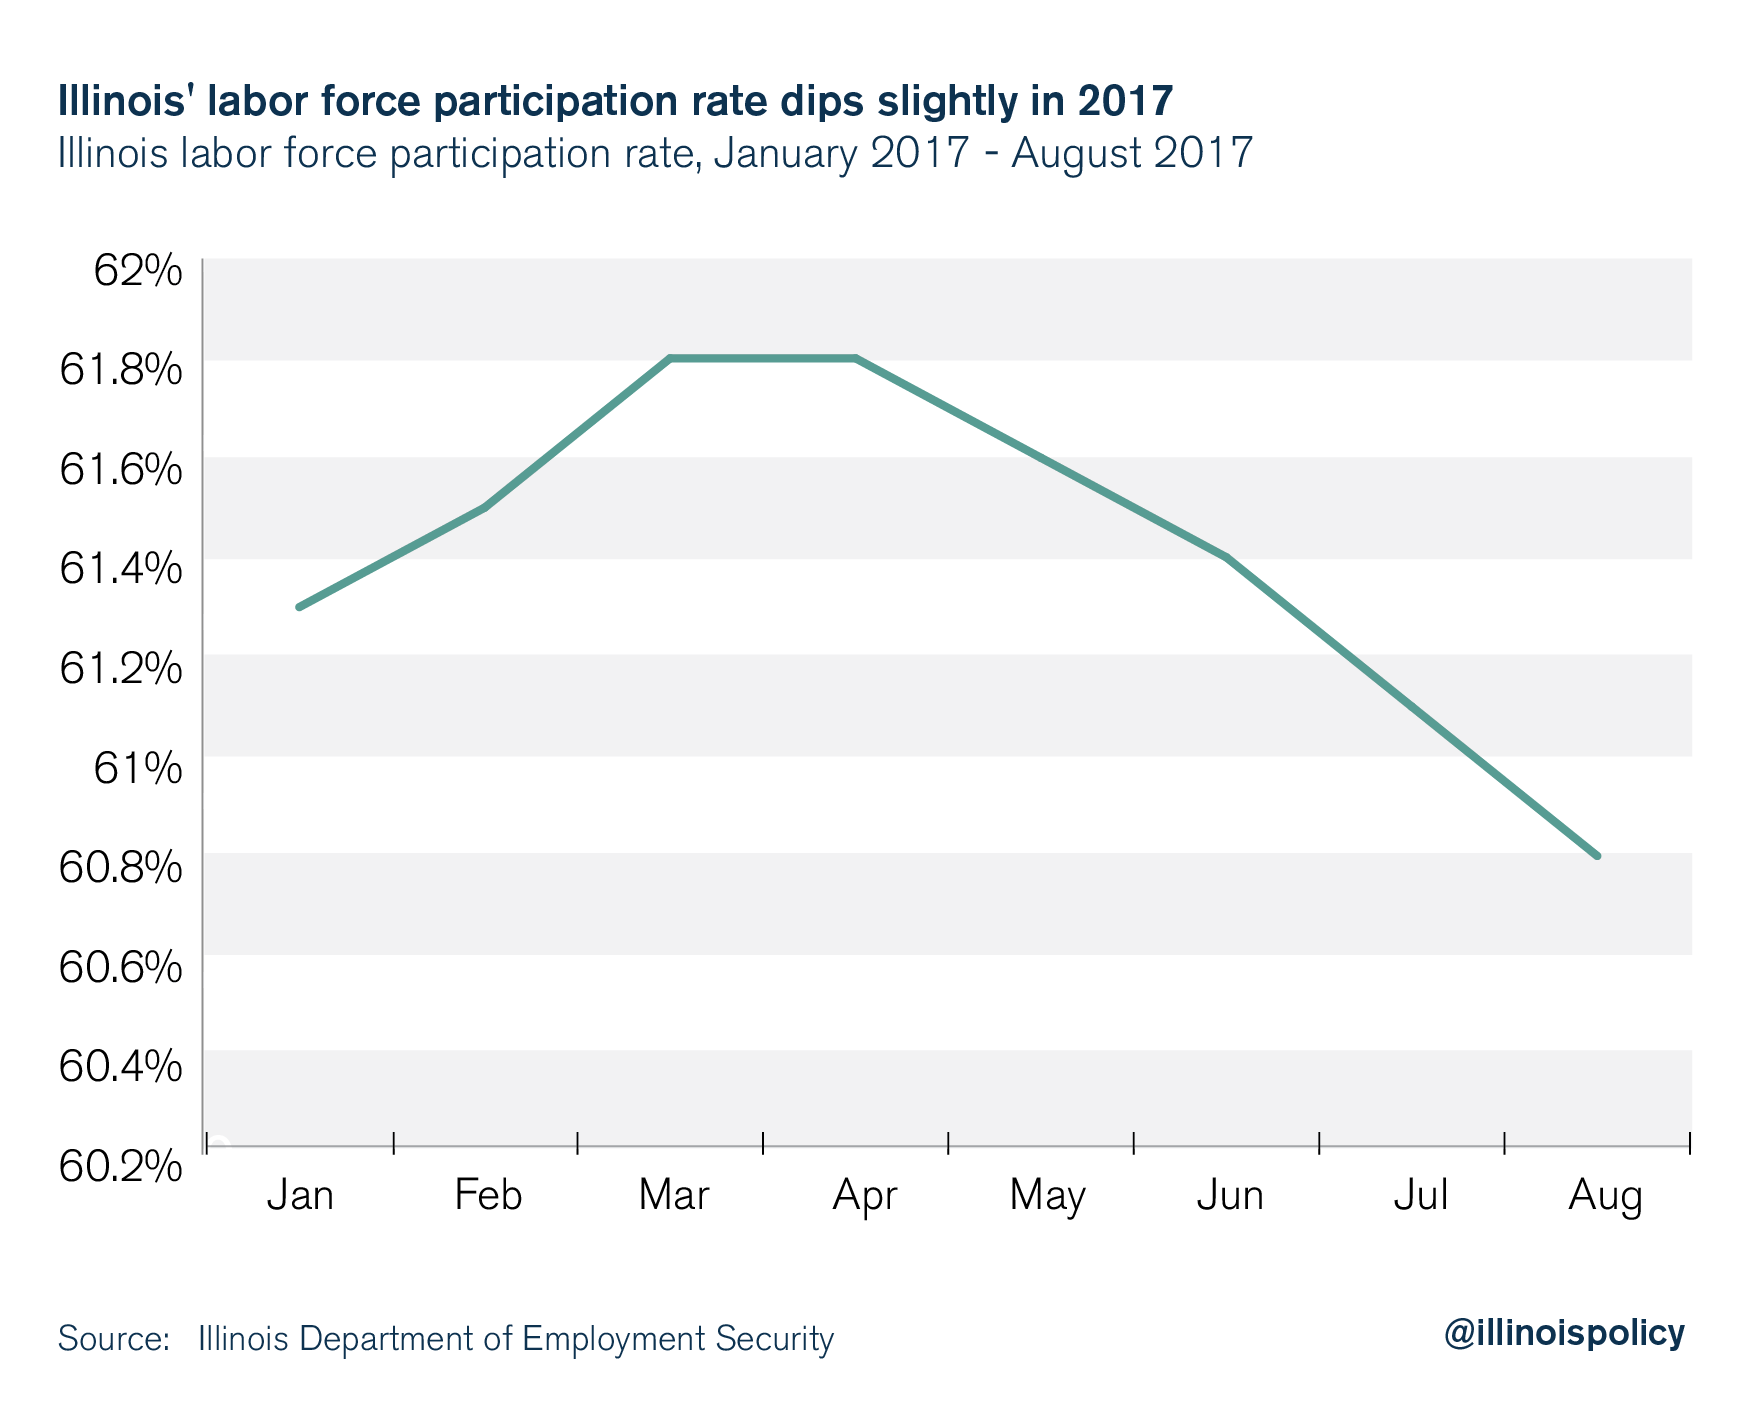 Illinois labor force participation rate dips slightly in 2017